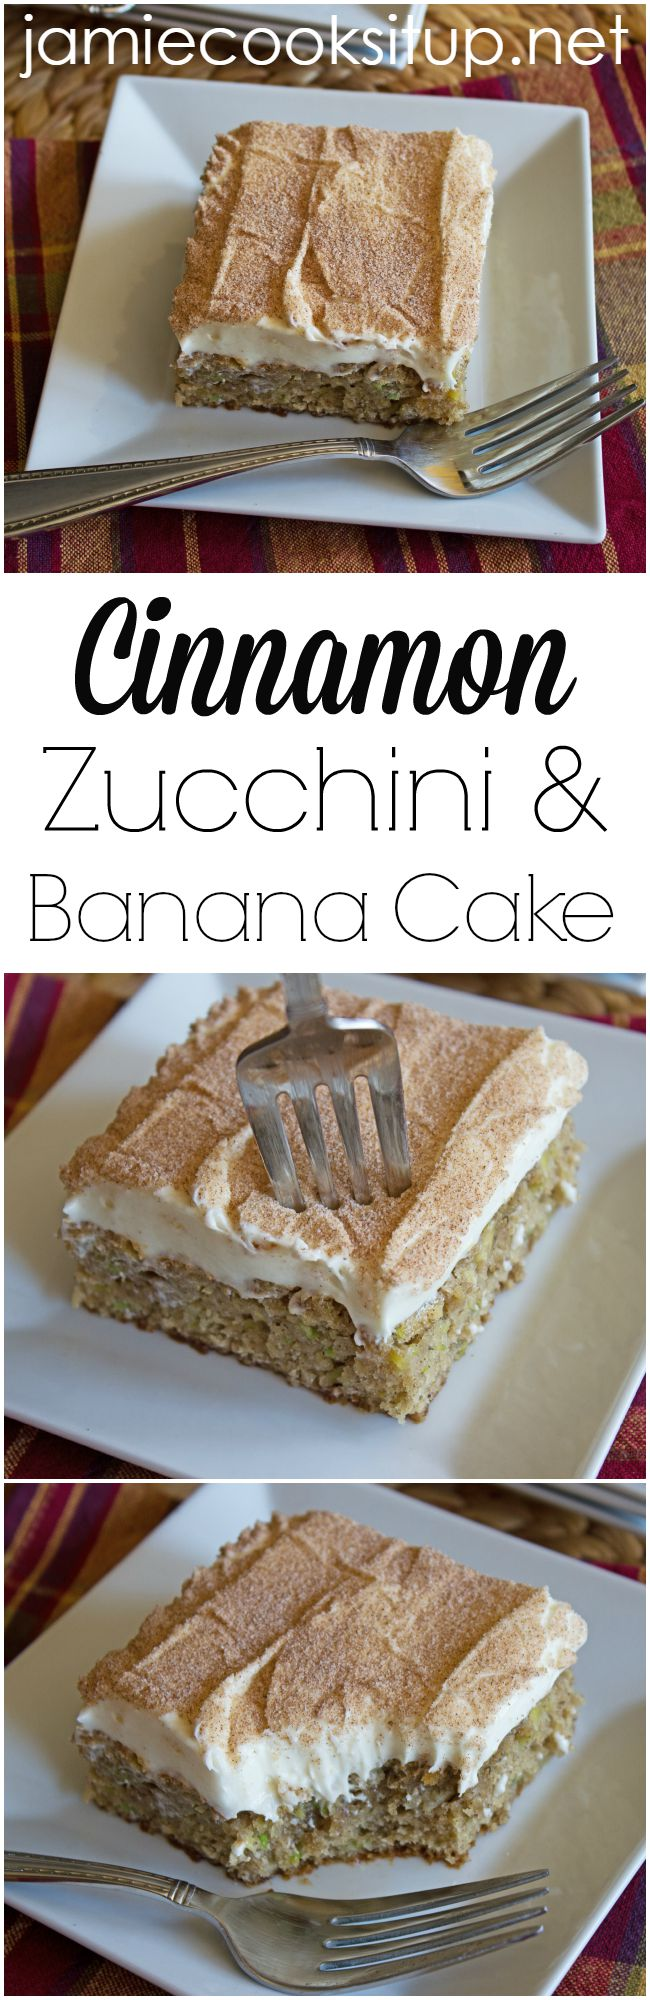 Cinnamon Zucchini and Banana Cake from Jamie Cooks It Up!